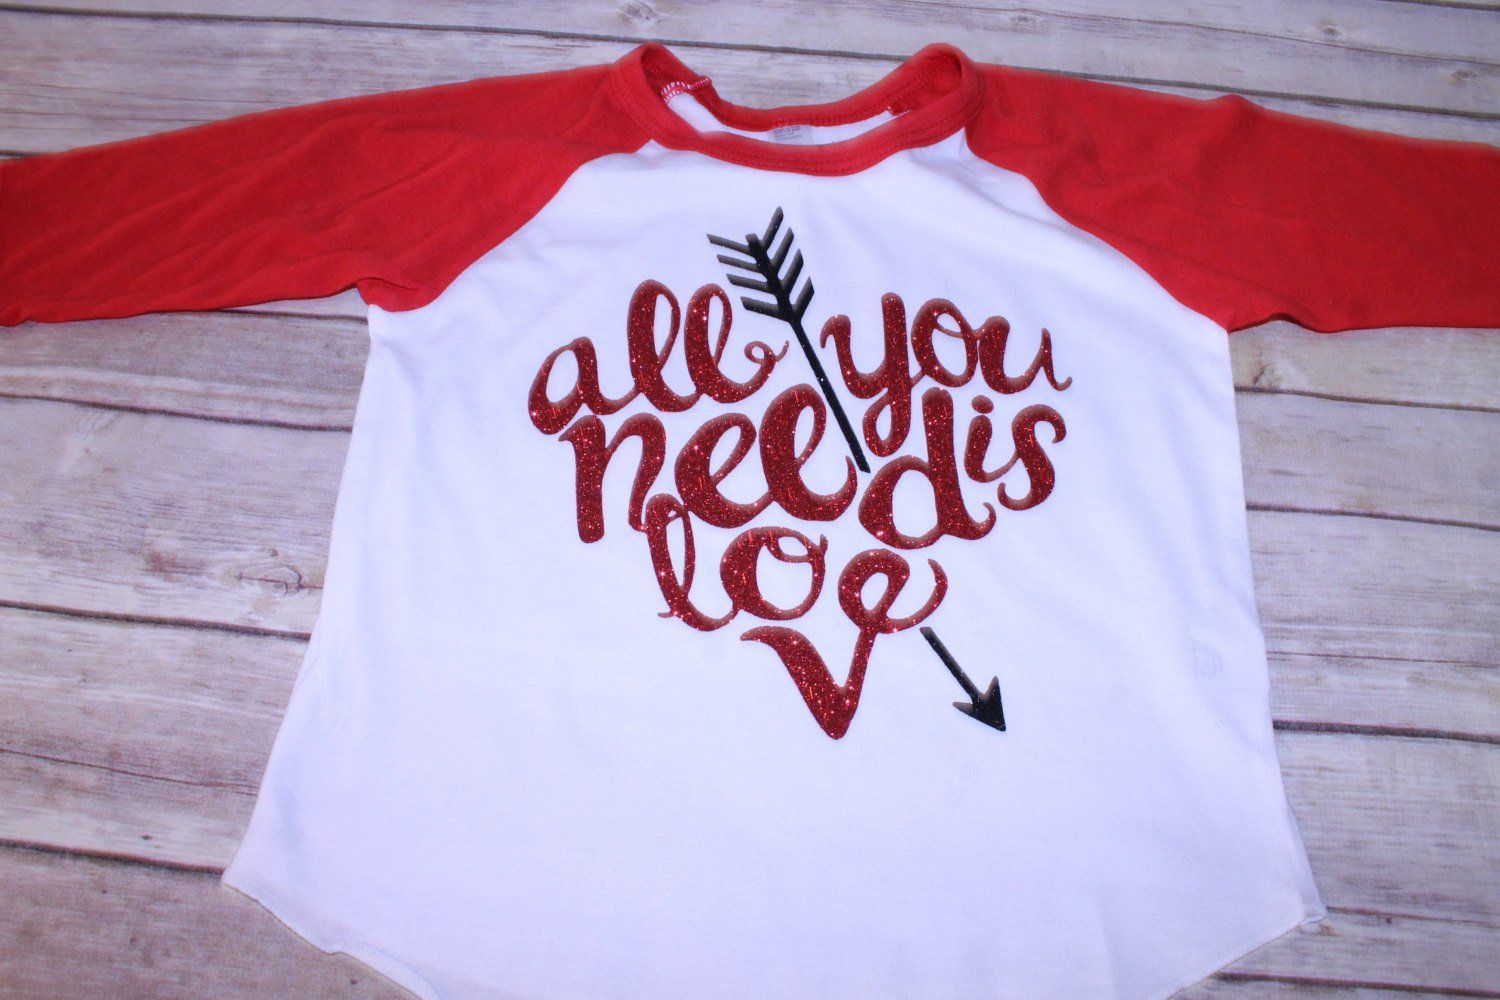 d1db04280b Girls Valentine Shirt, All you need is Love Girls Shirt, Love T-Shirt, Valentine  Shirt, Valentines Raglan, Valentines Day, Heart Shirt, ...